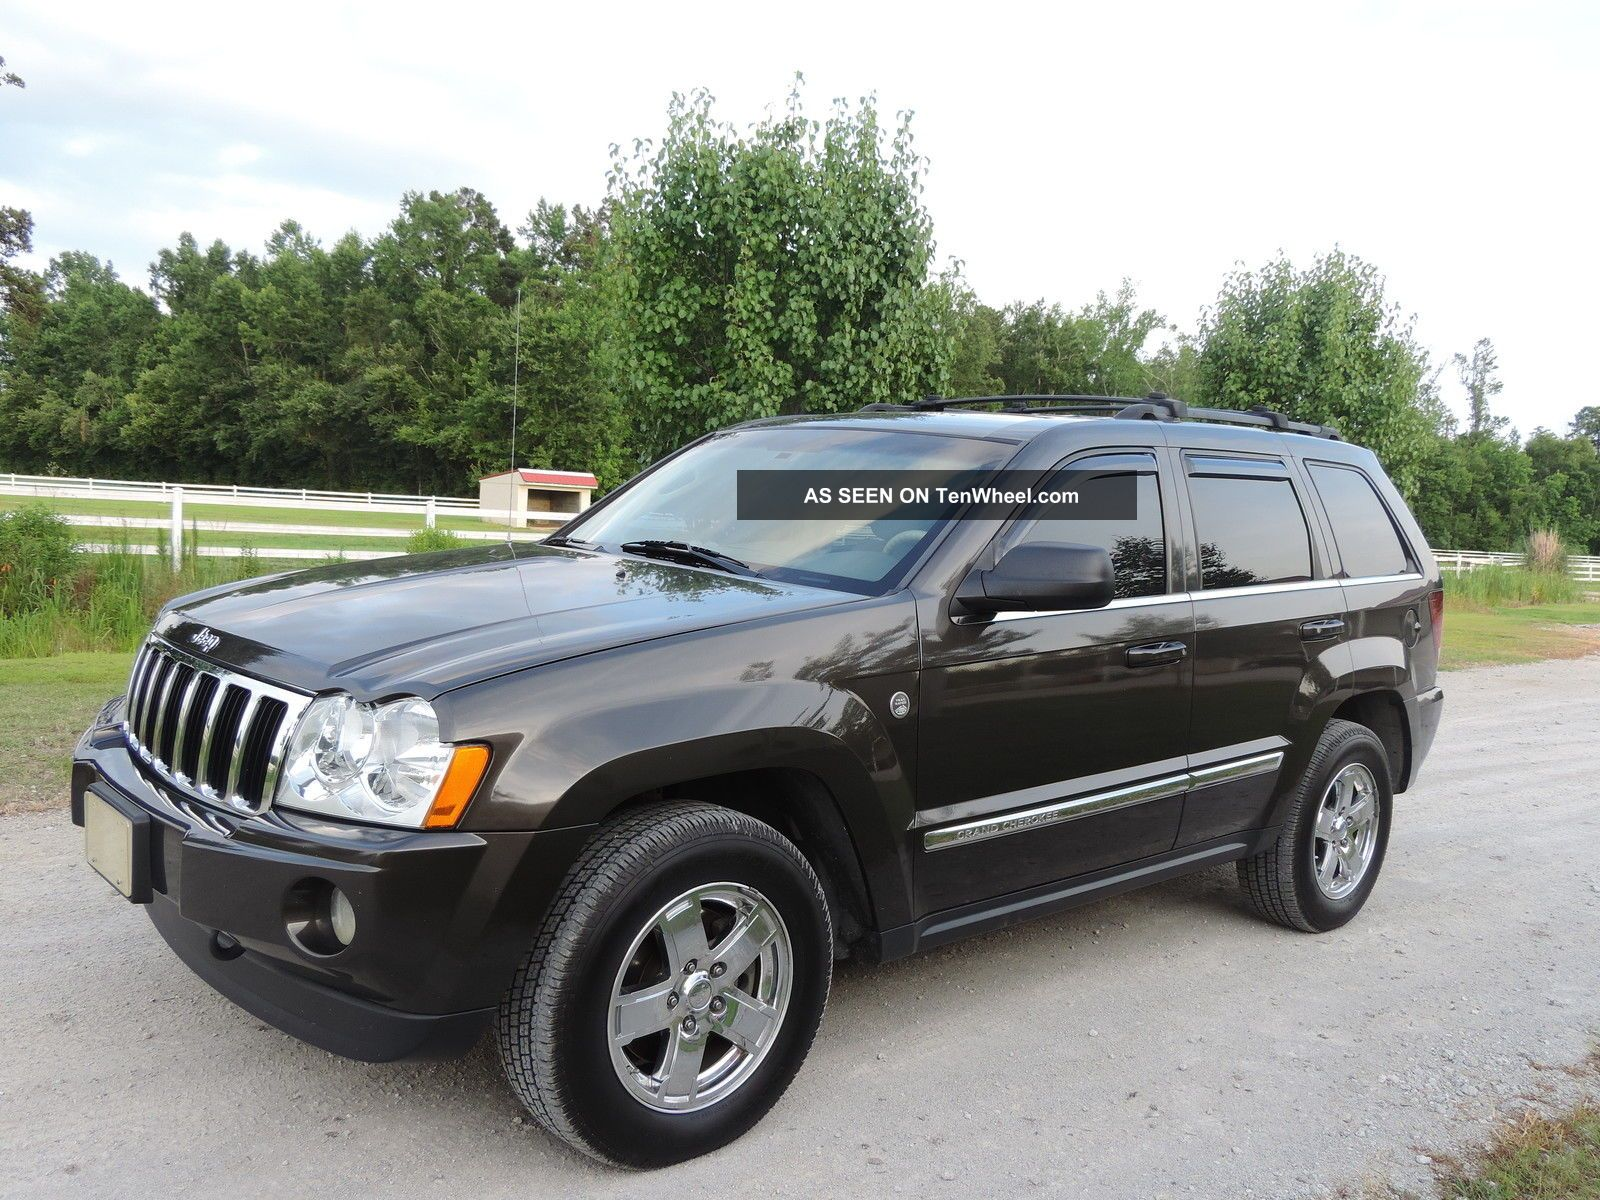 2005 Jeep Grand Cherokee Limited Sport Utility 4 Door 5 7l